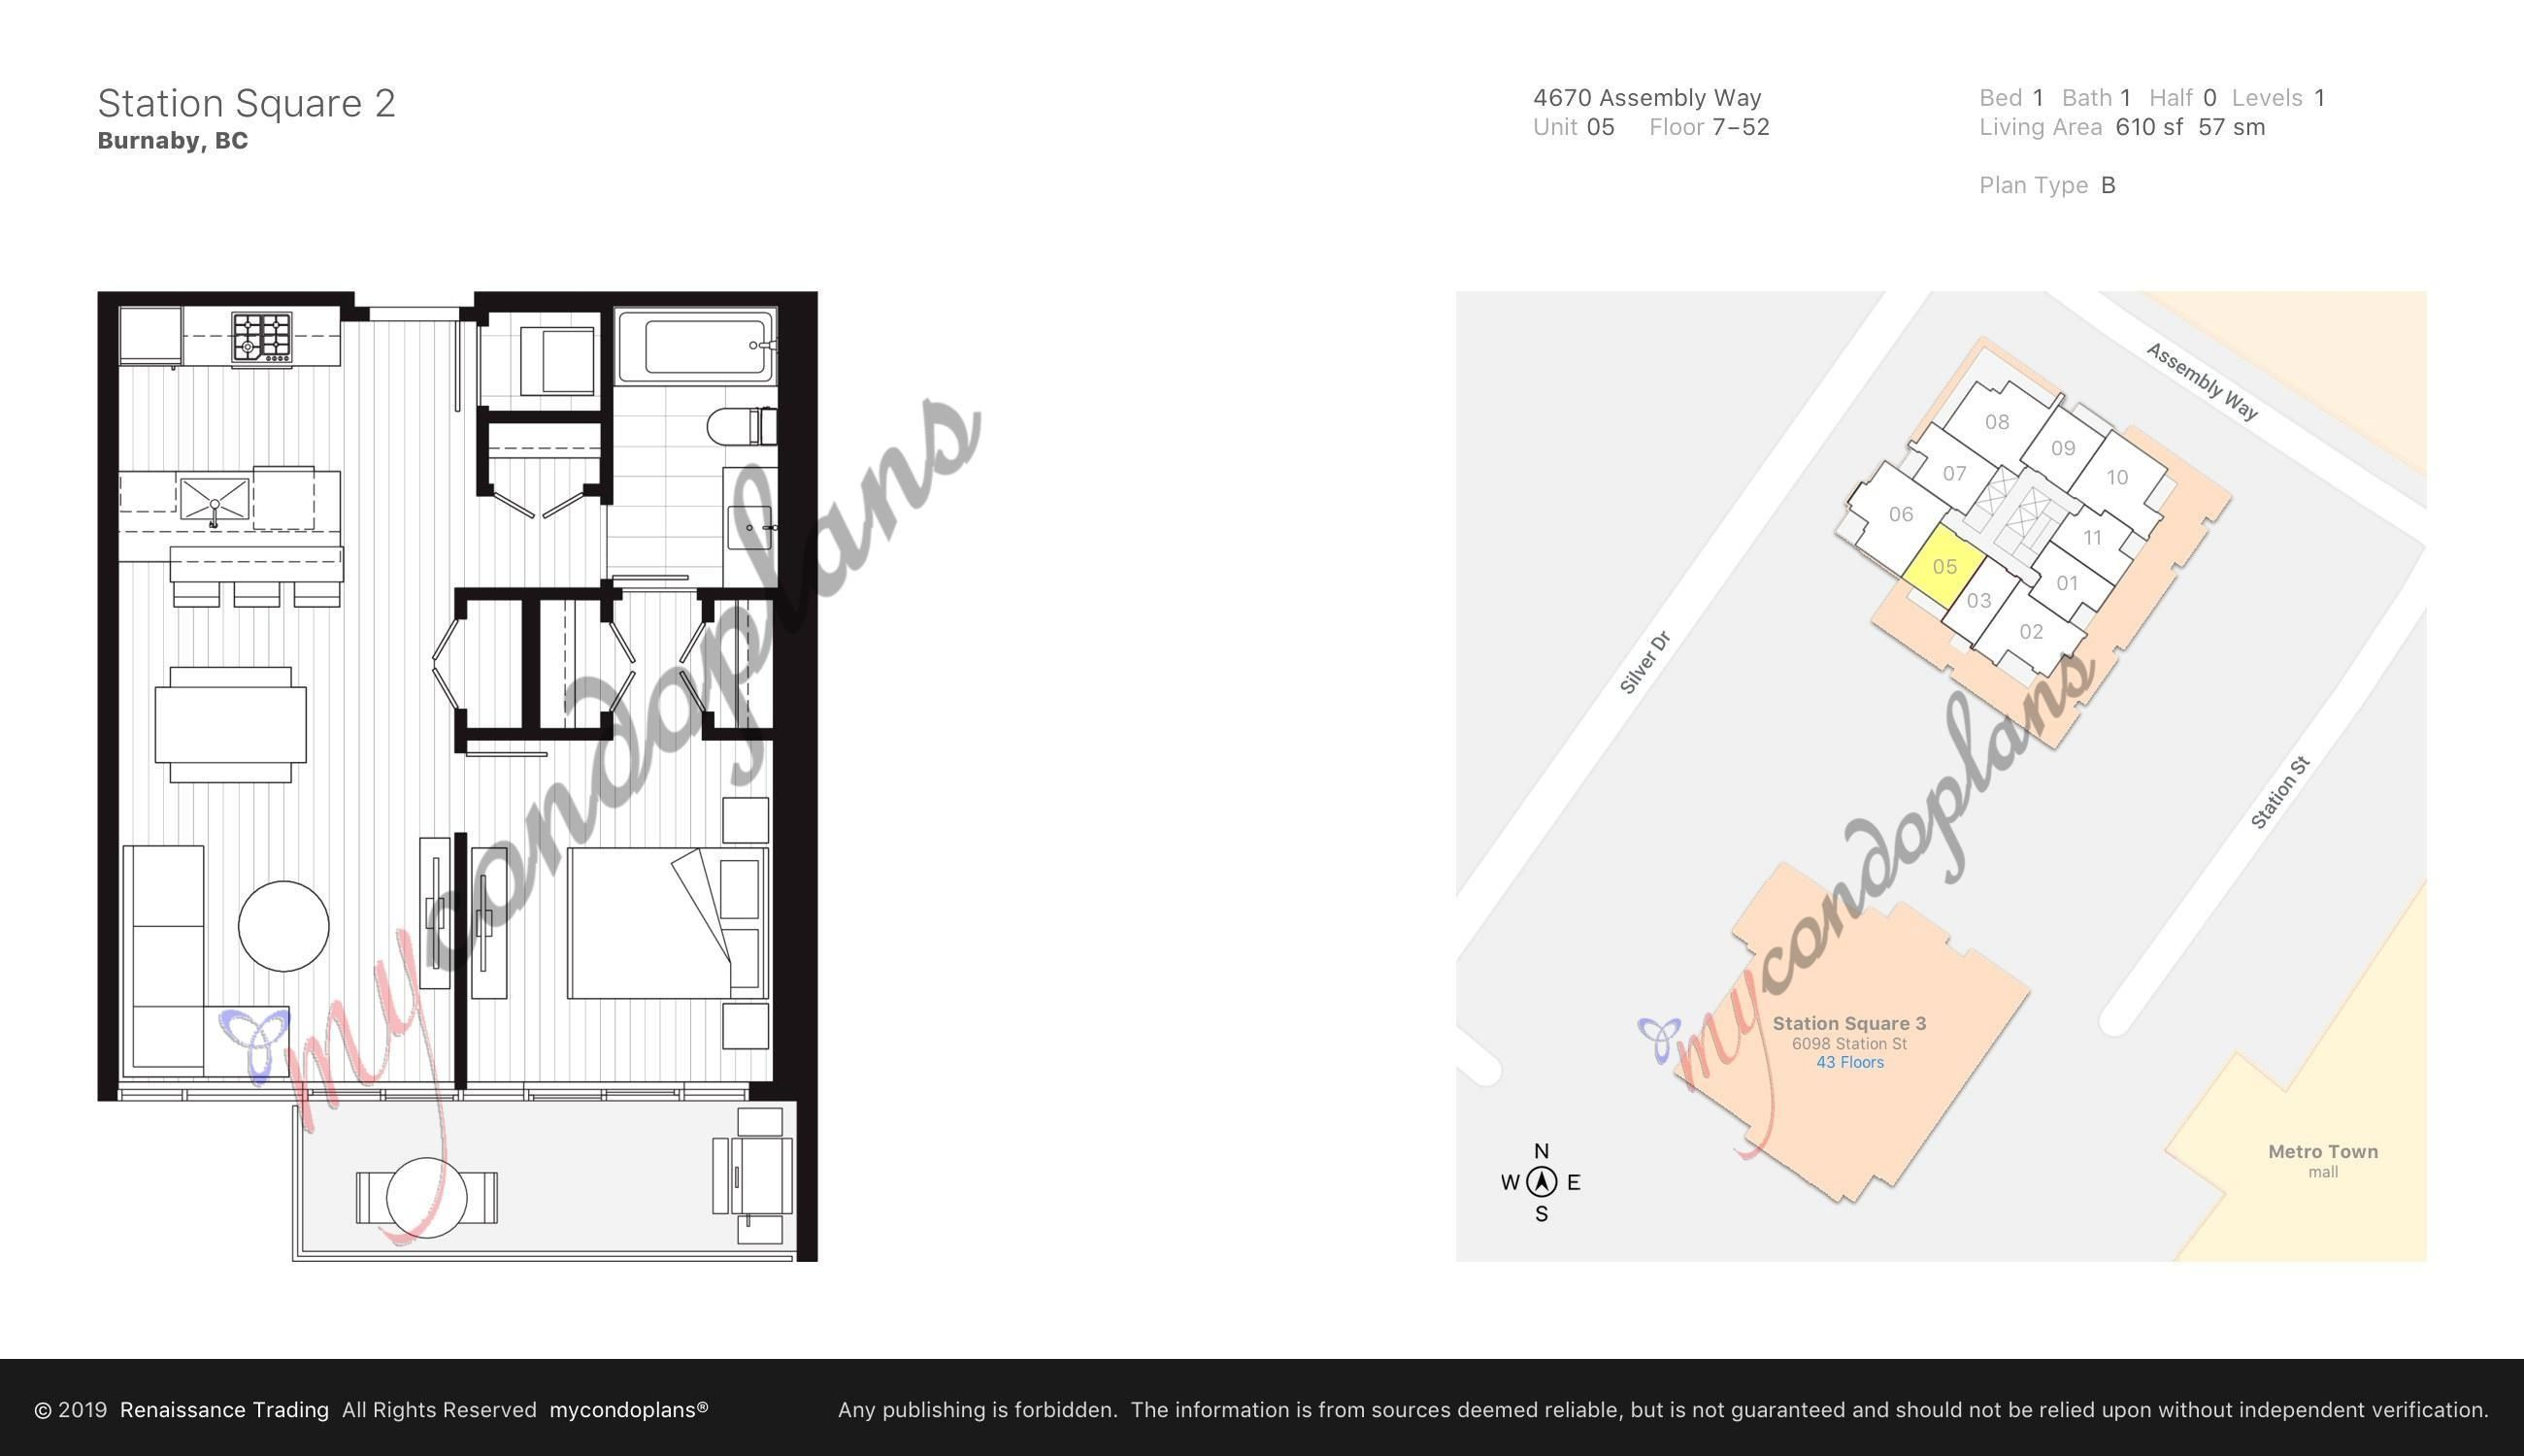 """Main Photo: 2205 4670 ASSEMBLY Way in Burnaby: Metrotown Condo for sale in """"Station Square"""" (Burnaby South)  : MLS®# R2625336"""